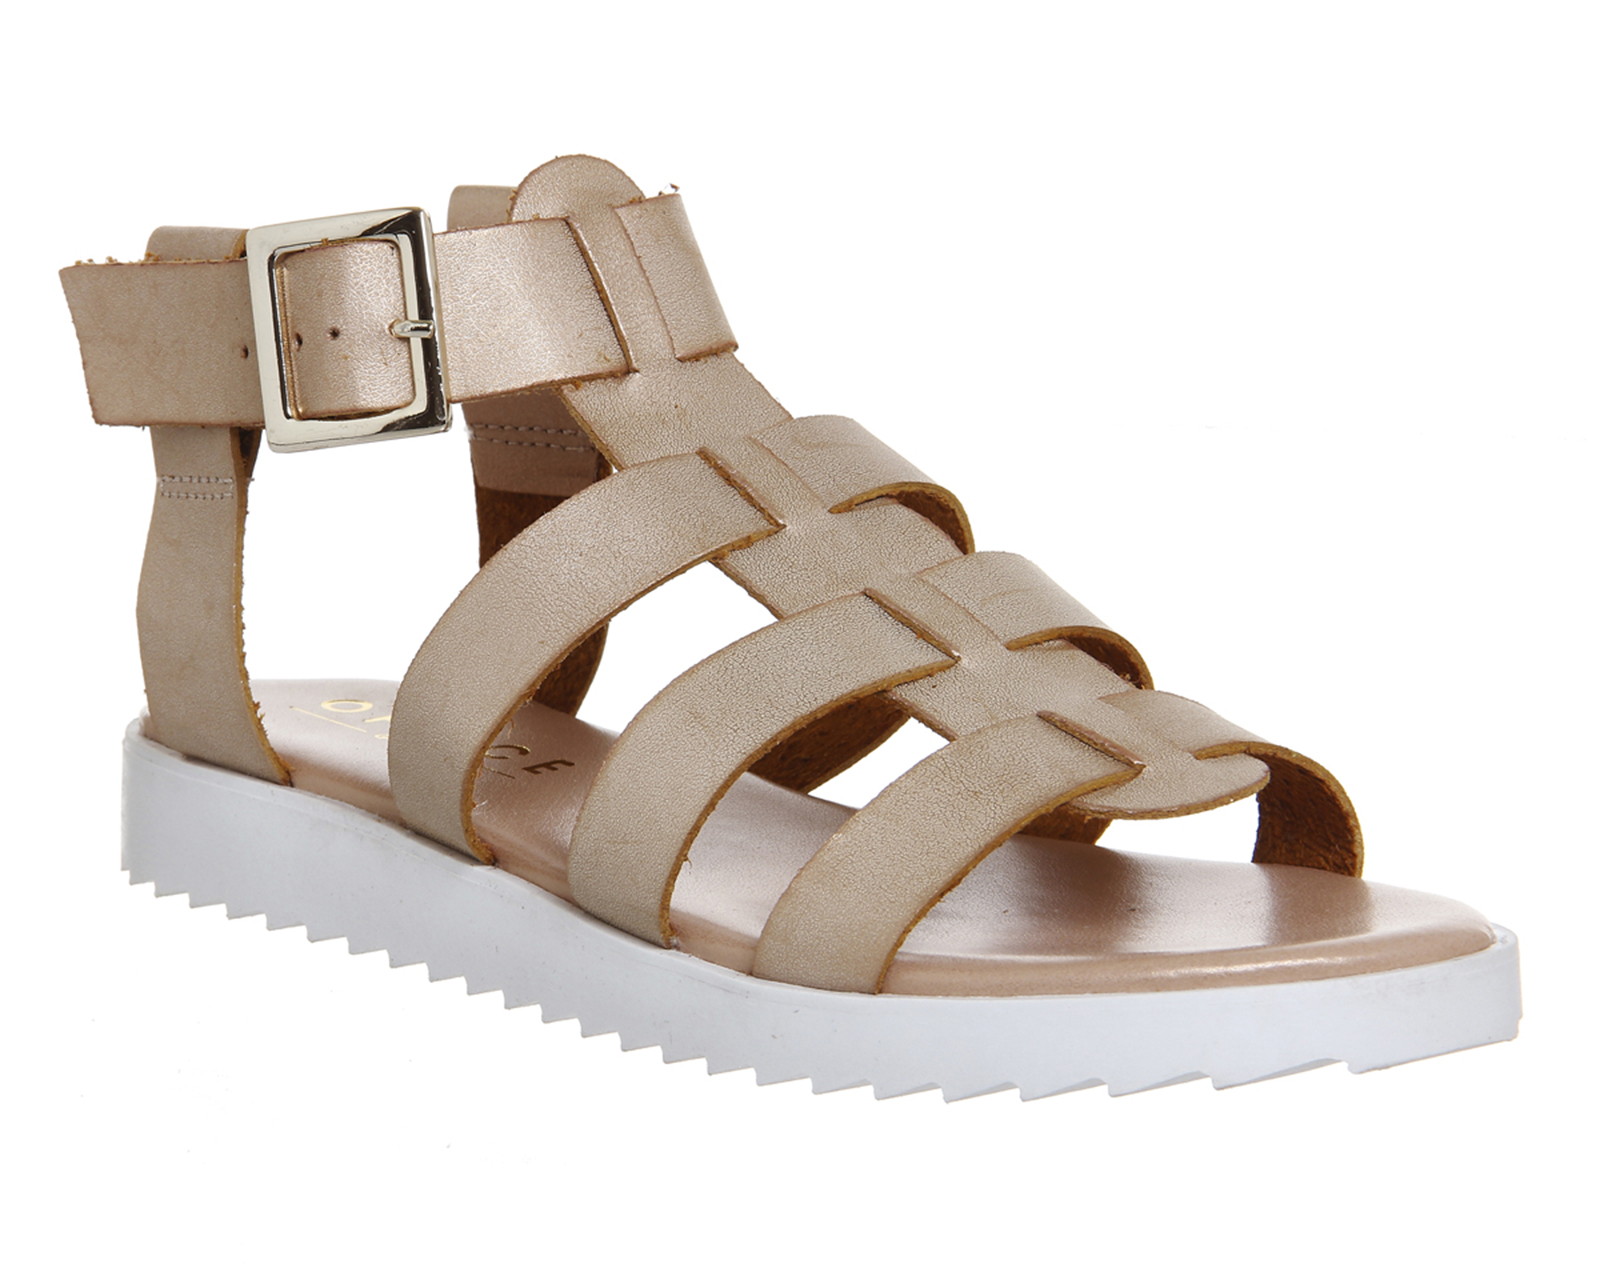 Womens-Office-Brody-Gladiator-Sandals-NUDE-Sandals